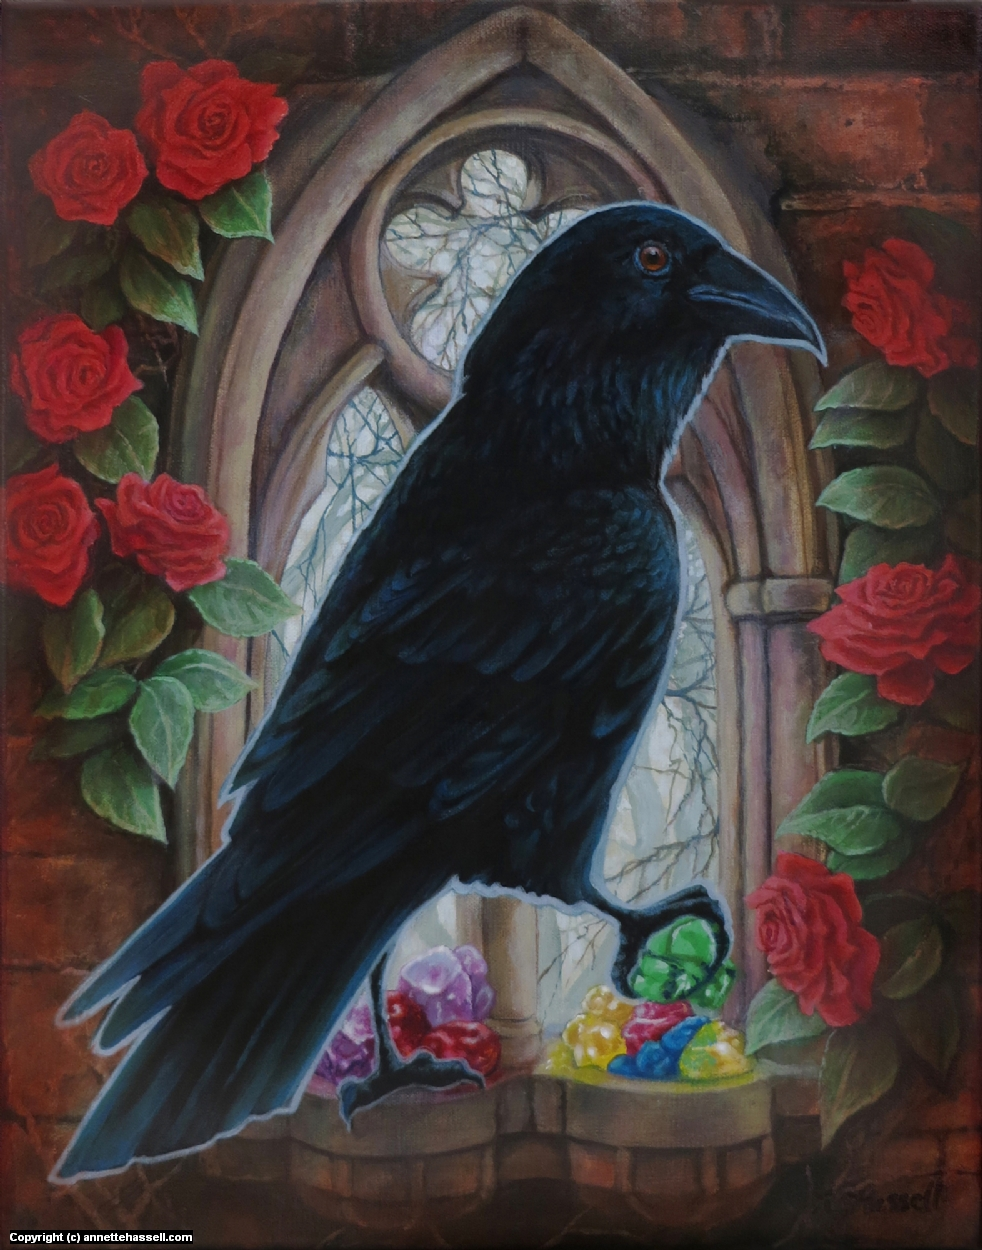 Raven's Stones Artwork by Annette Hassell